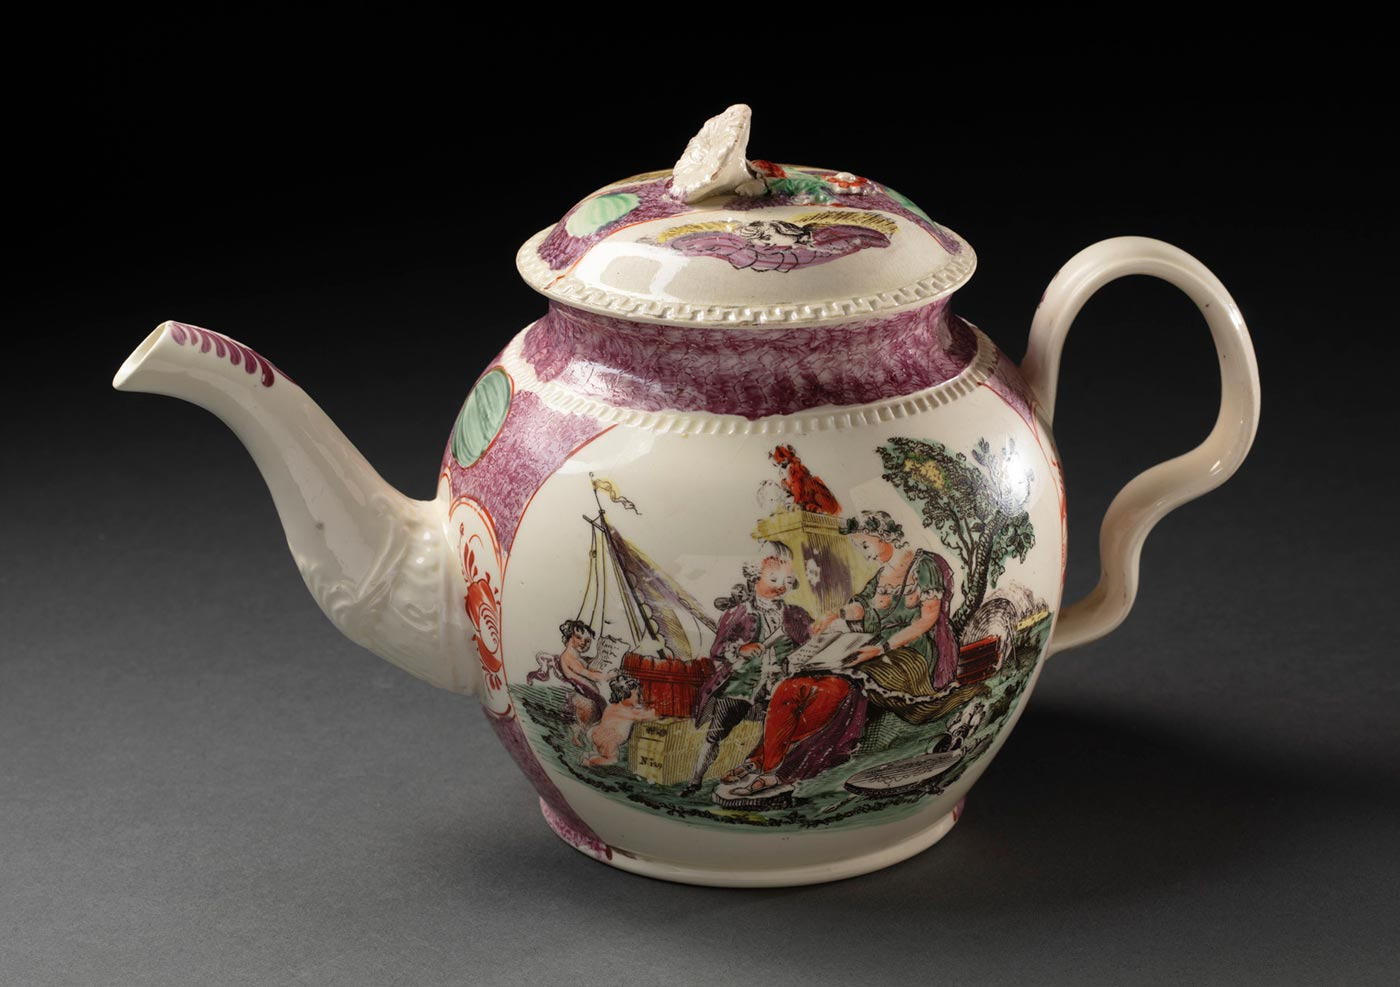 A creamware pottery teapot with a painted colour design. The pot has a spherical shaped body, a curved tapering spout, an ear-shaped handle, and a decorative lift off lid. The design has a voyage theme, showing an main oval panel featuring a woman and man - identified as Britannia directing Captain James Cook - in a seascape background. The lid is also painted and has a floral form handle. The juncture of the handle and lid is damaged. - click to view larger image